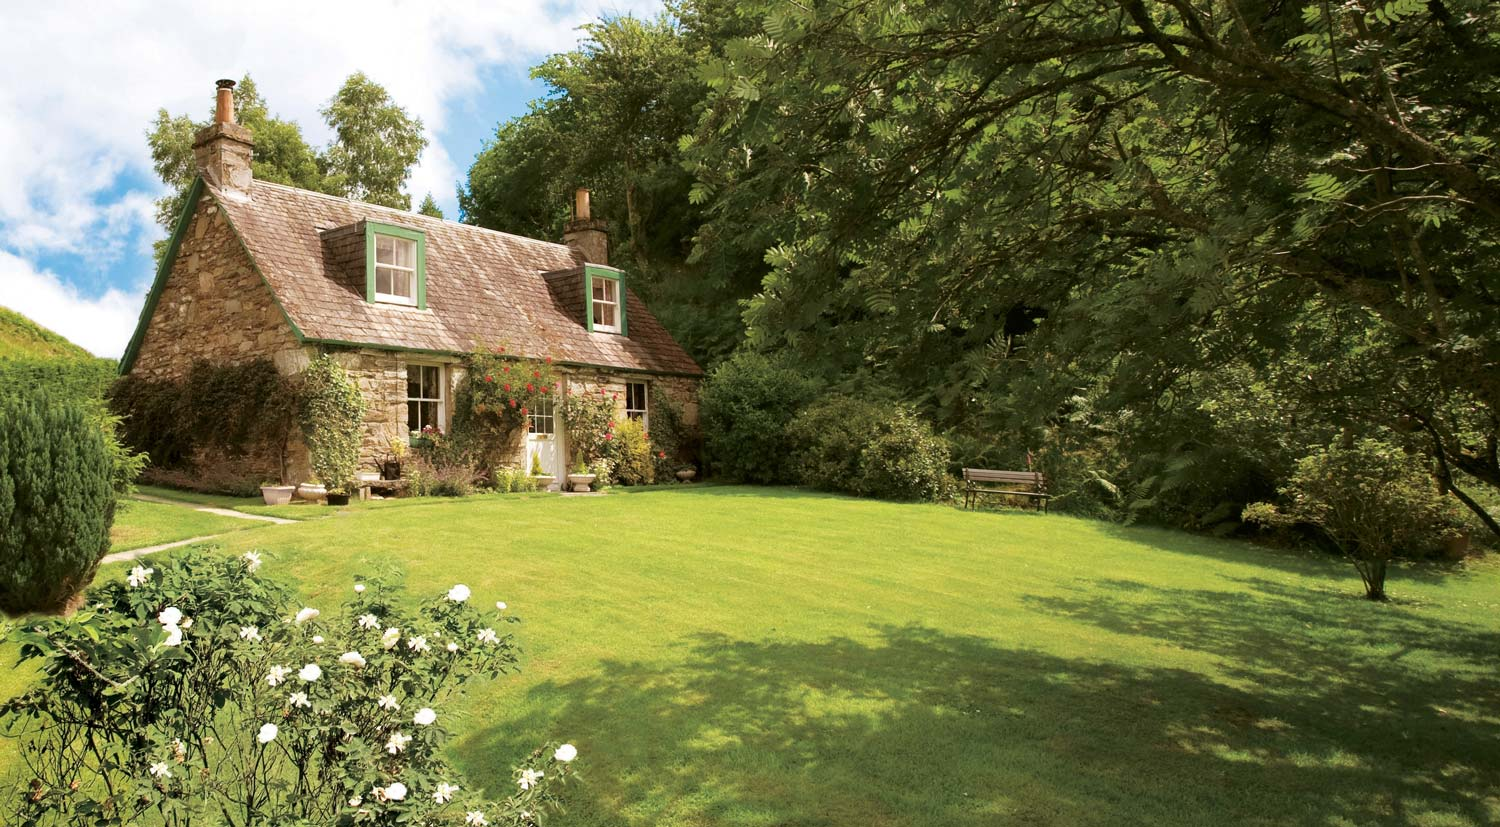 Holiday Cottages In England To Rent - Save up to 60%